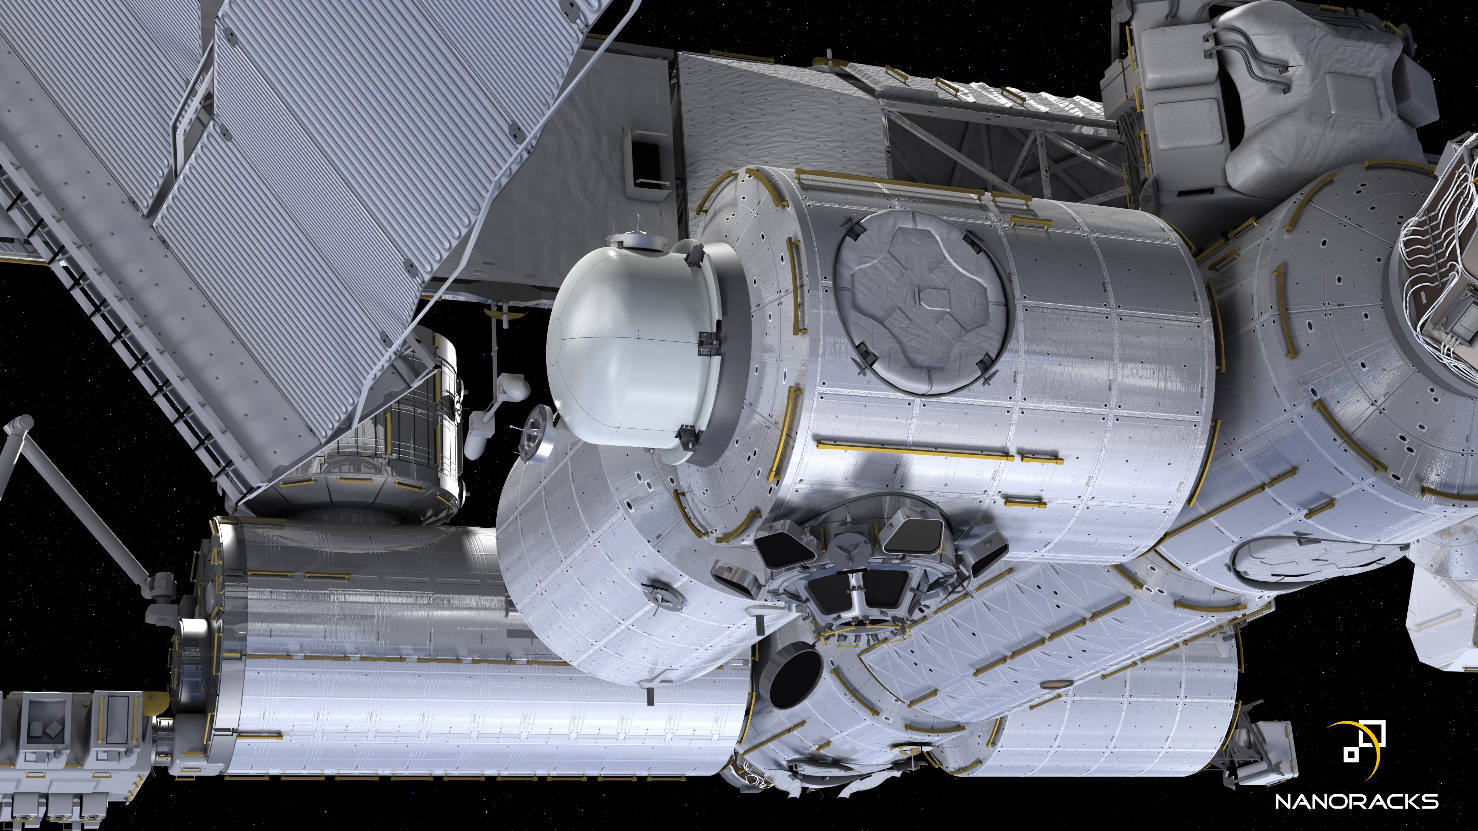 Boeing, Nanoracks to develop privately funded airlock for ISS